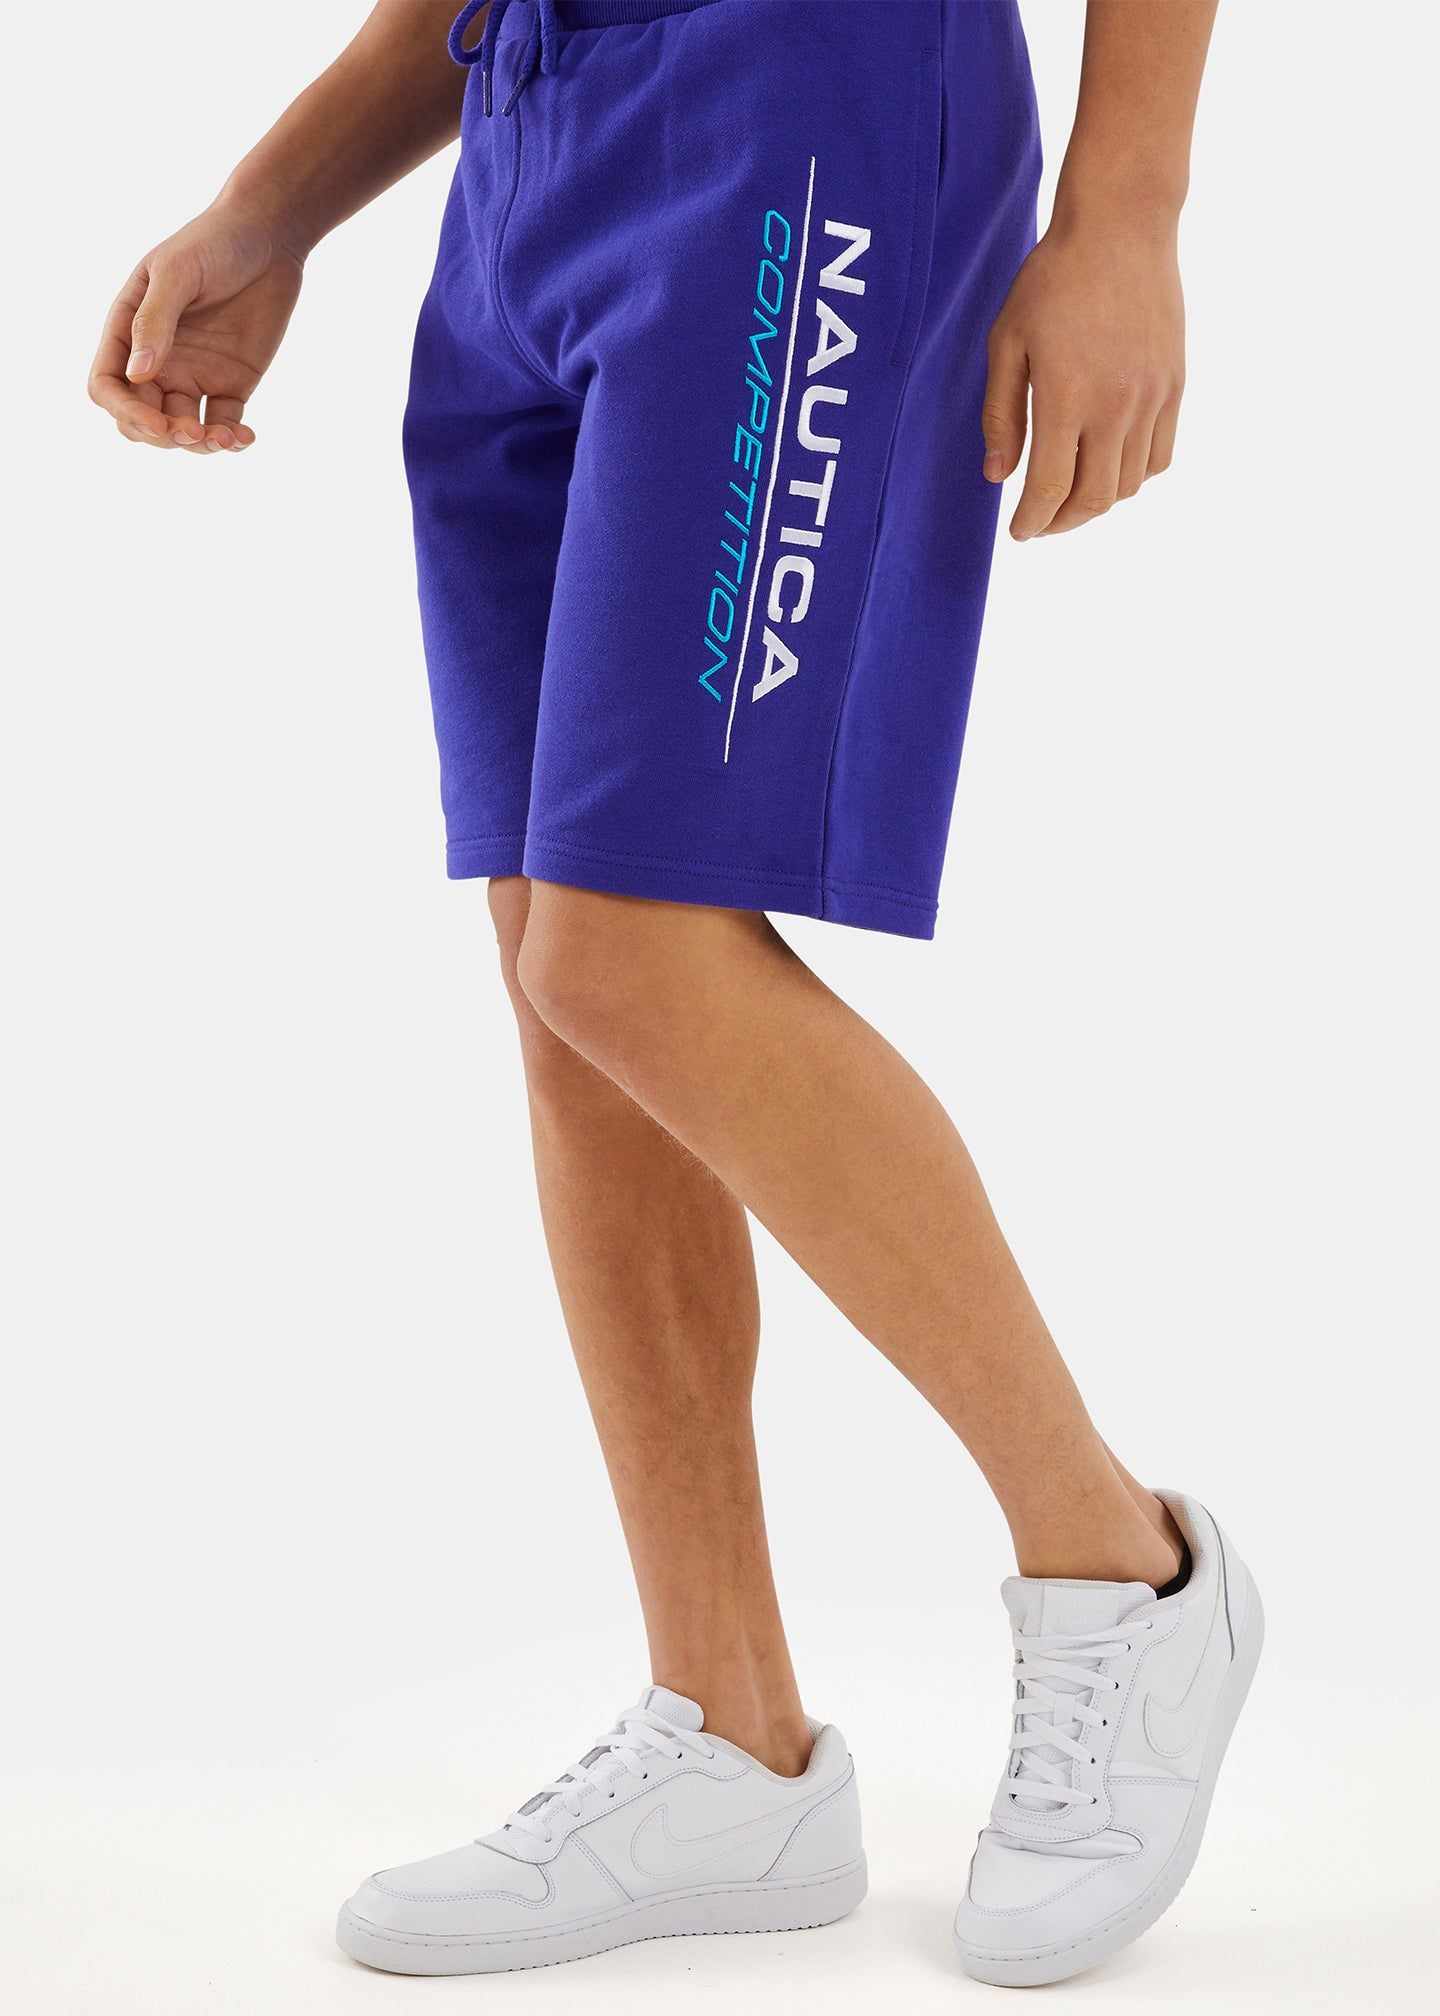 Dodger Fleece Short - Purple